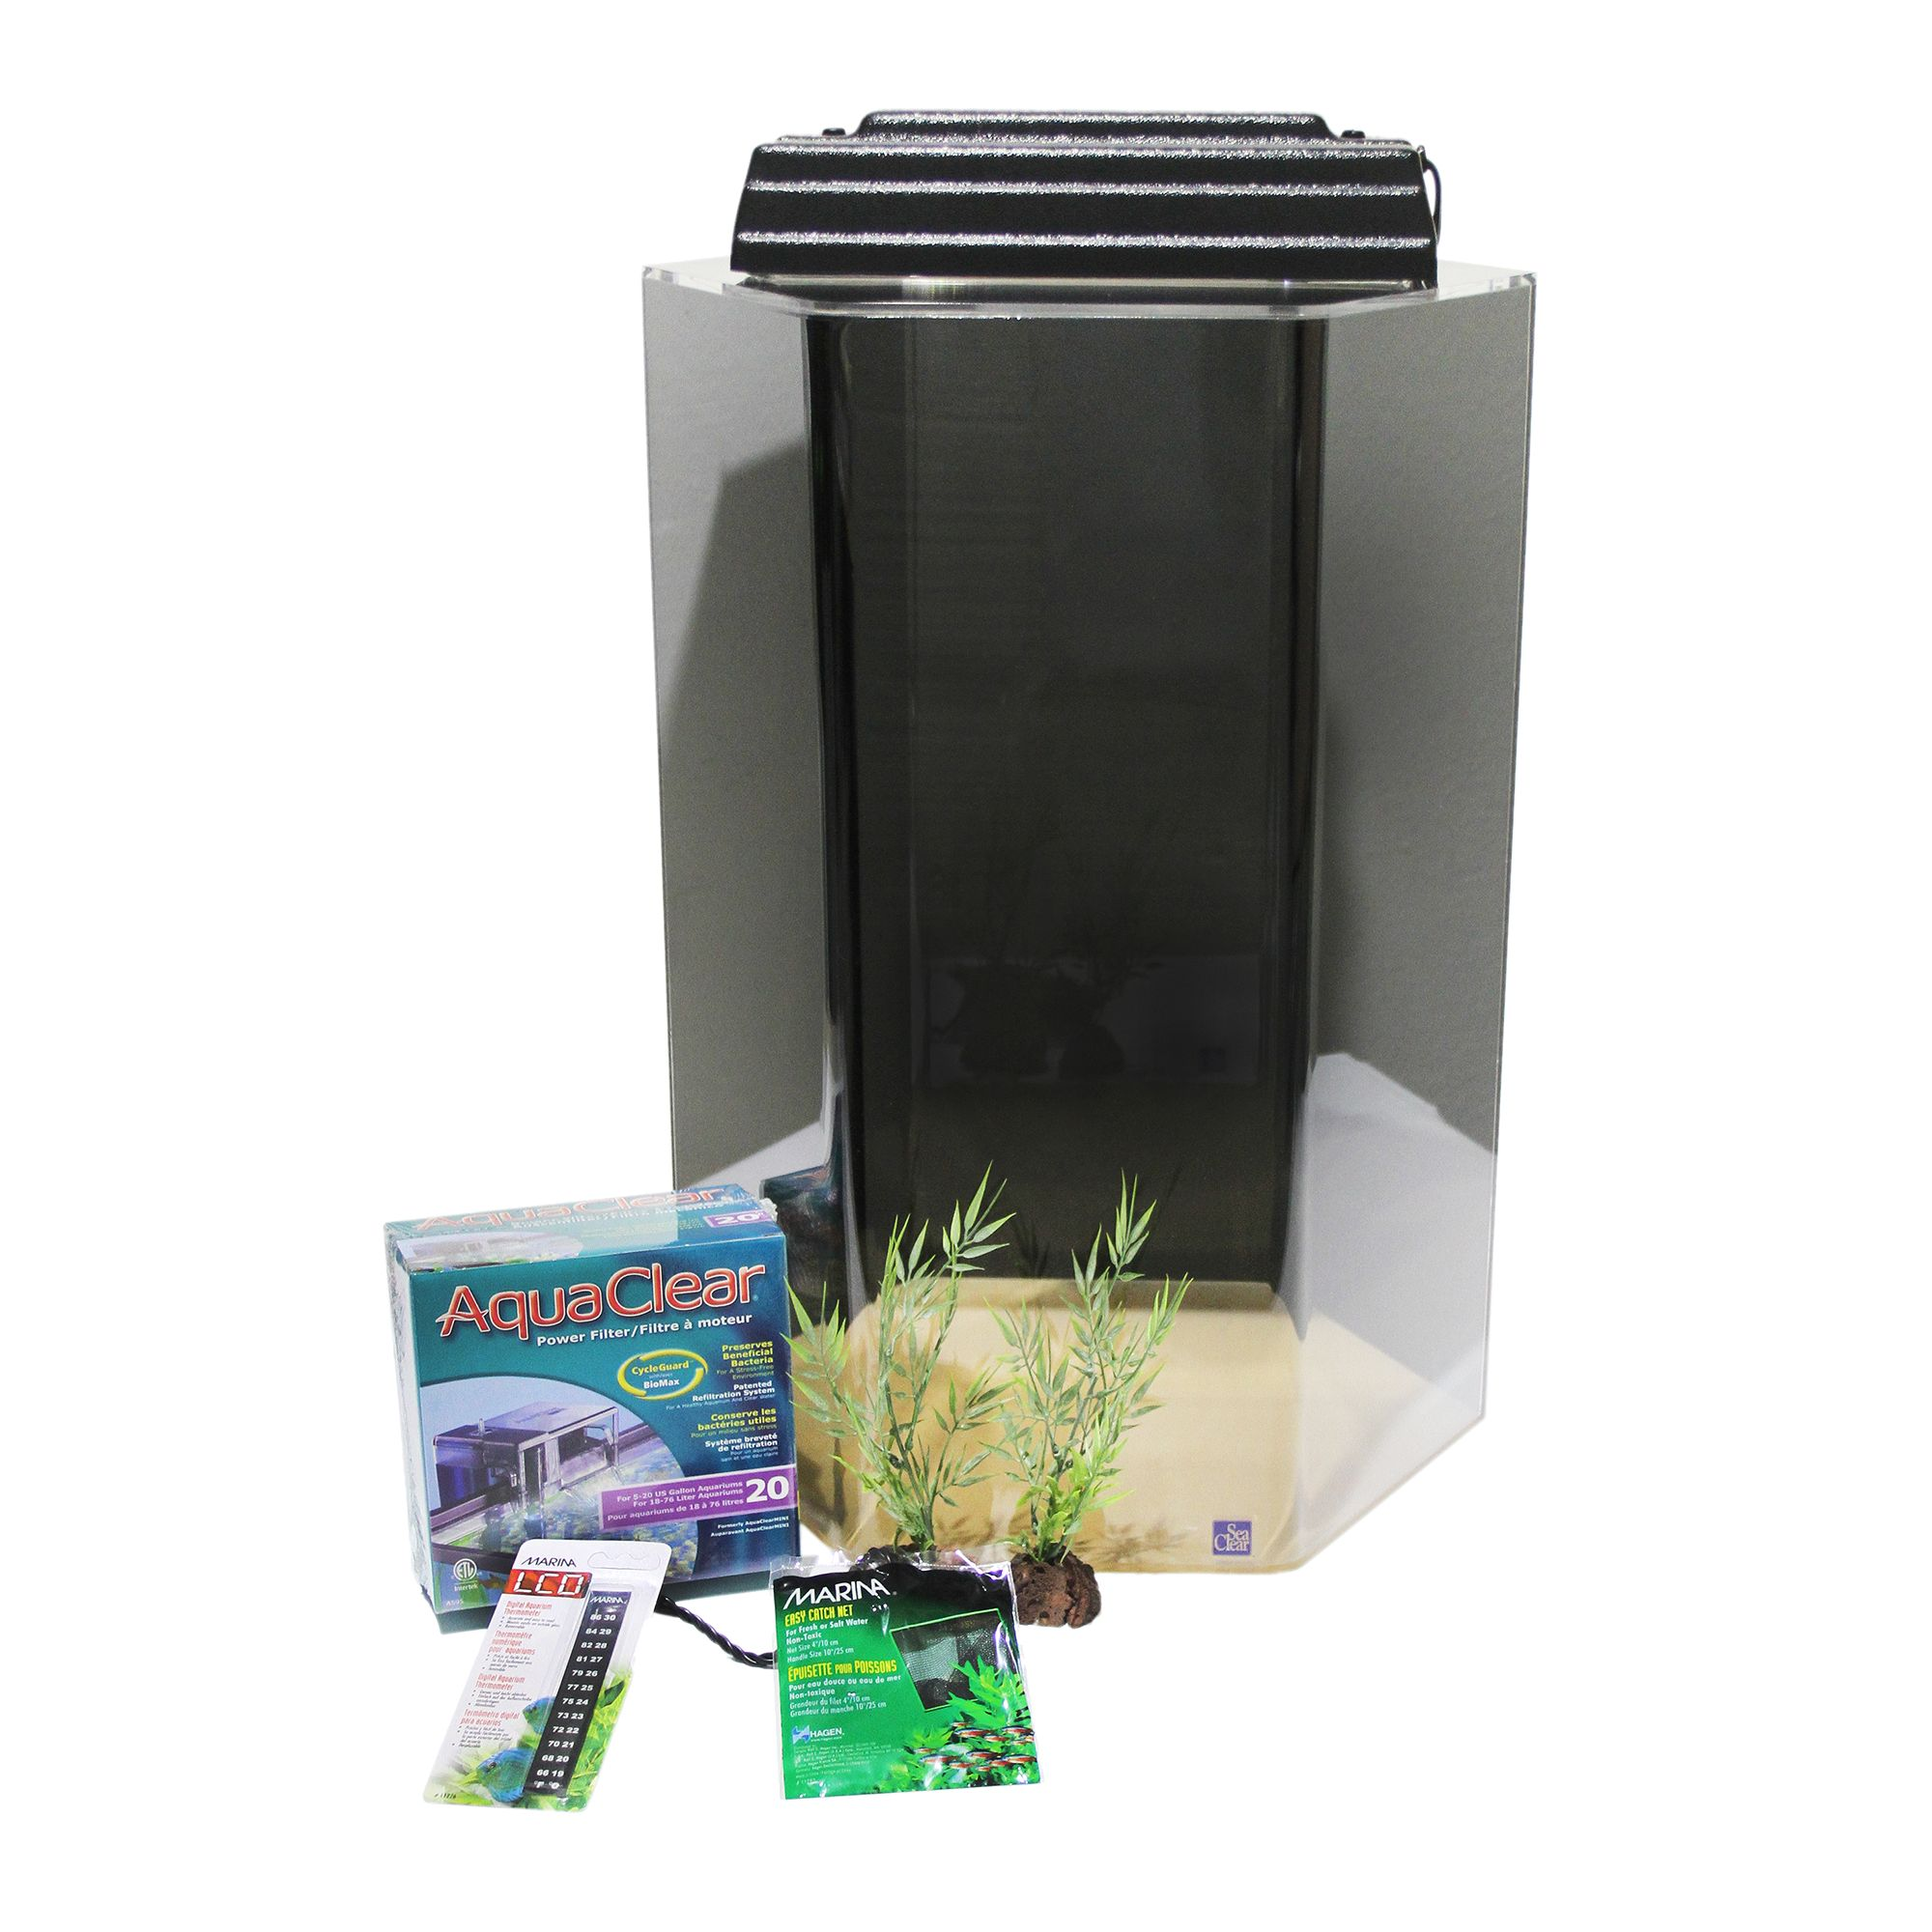 SeaClear Hexagon Tank 20 Gallon Aquarium Kit, Black 5073970